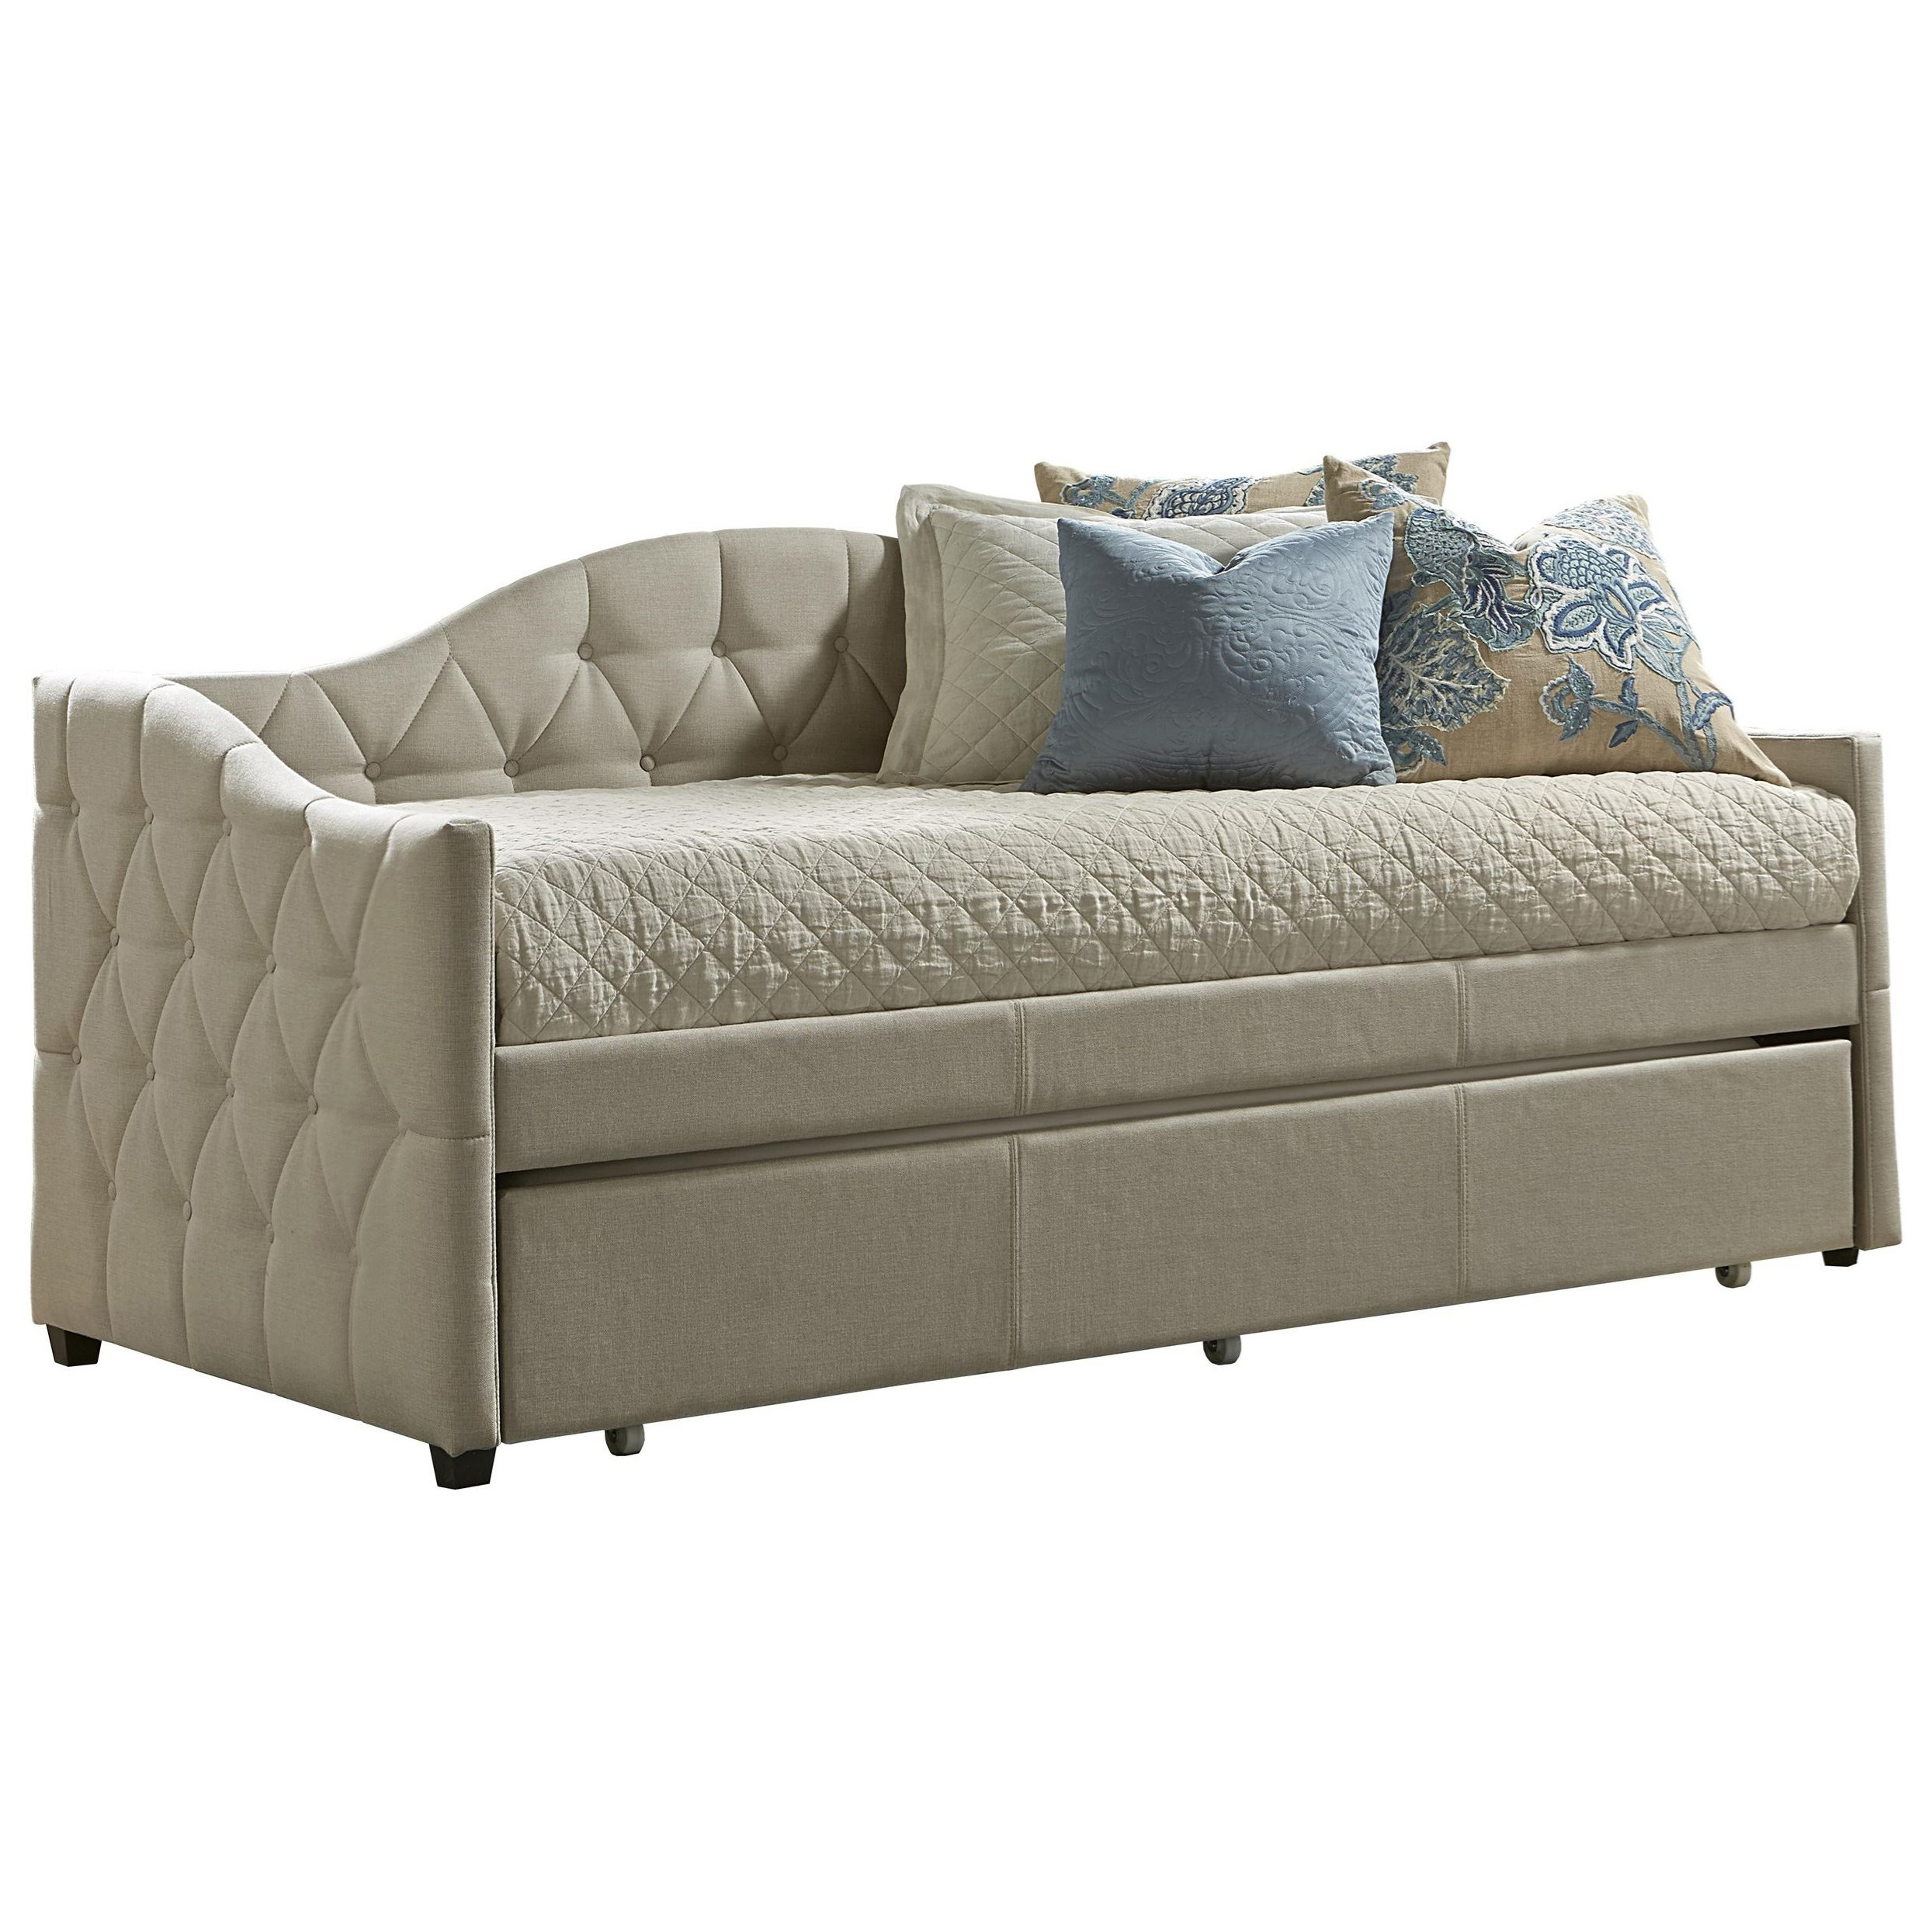 Hillsdale Daybeds Daybed with Trundle - Item Number: 1125DBT